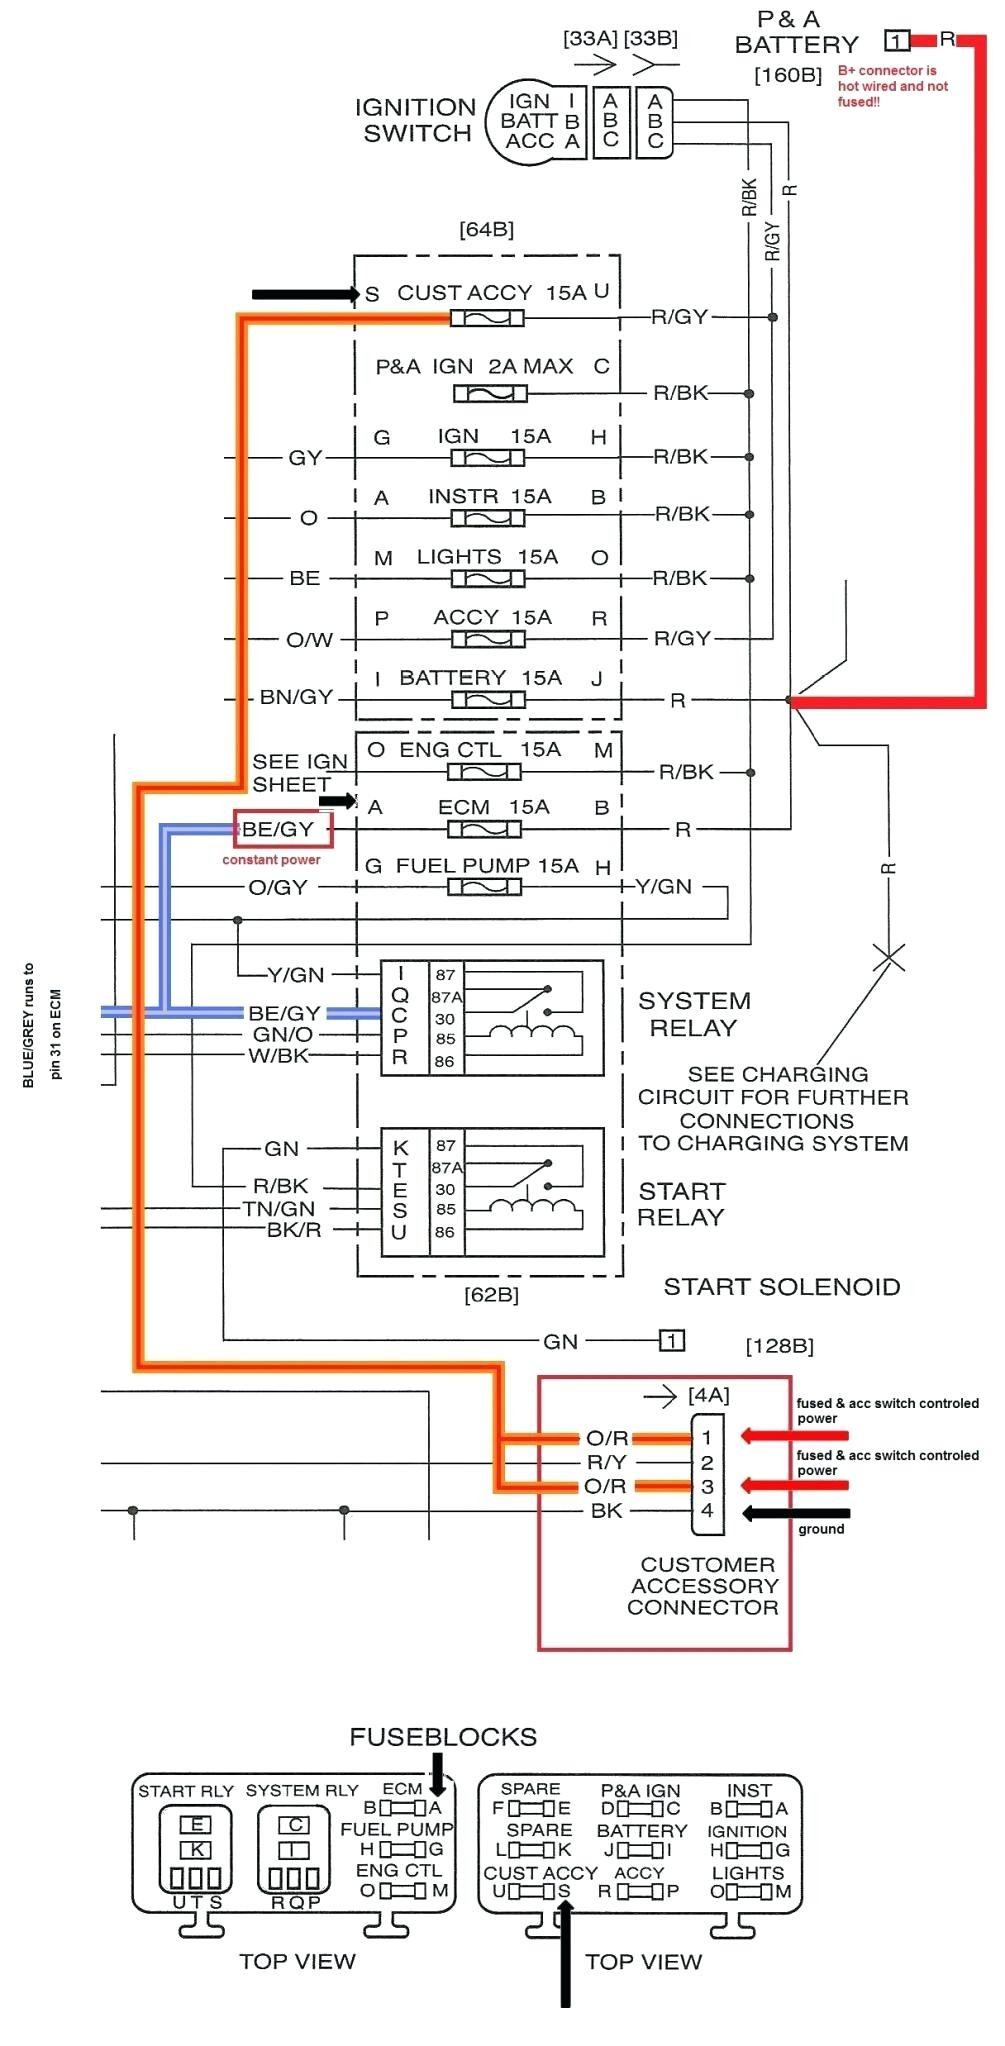 Wiring Diagram For 2007 Harley Street Glide - Wiring ... on